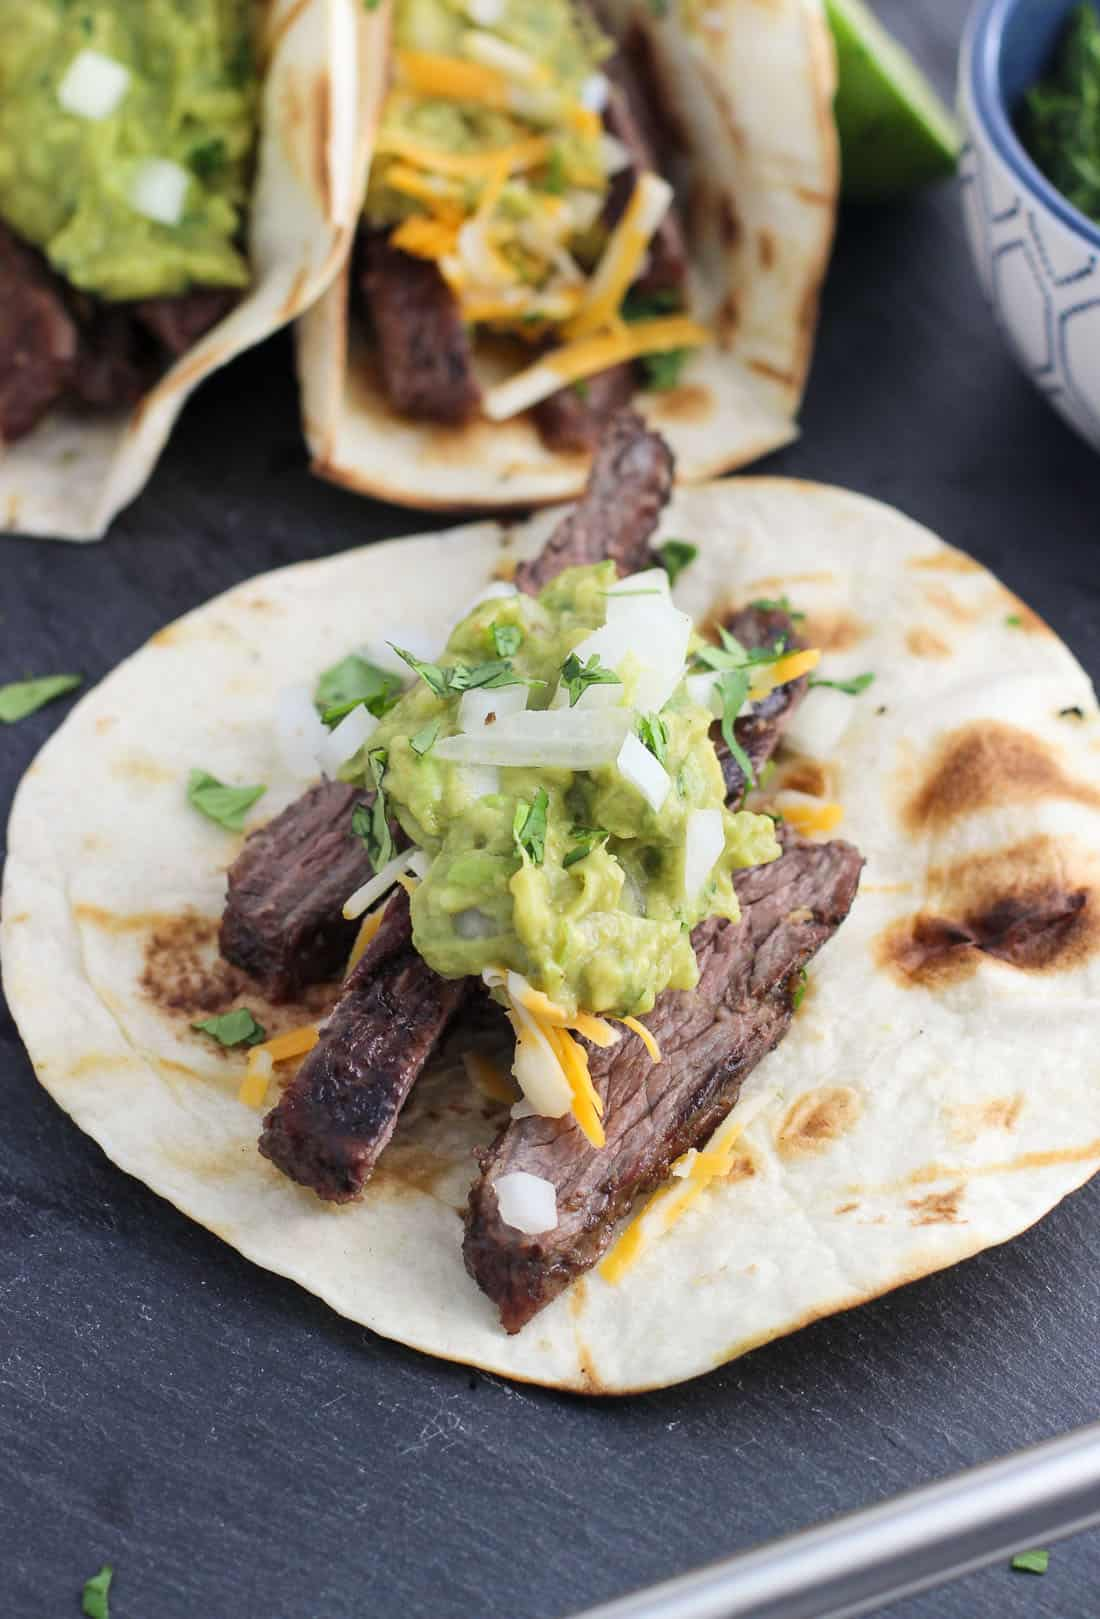 Carne asada tacos feature tender marinated + grilled skirt steak, grilled tortillas, and a plethora of your favorite taco toppings.